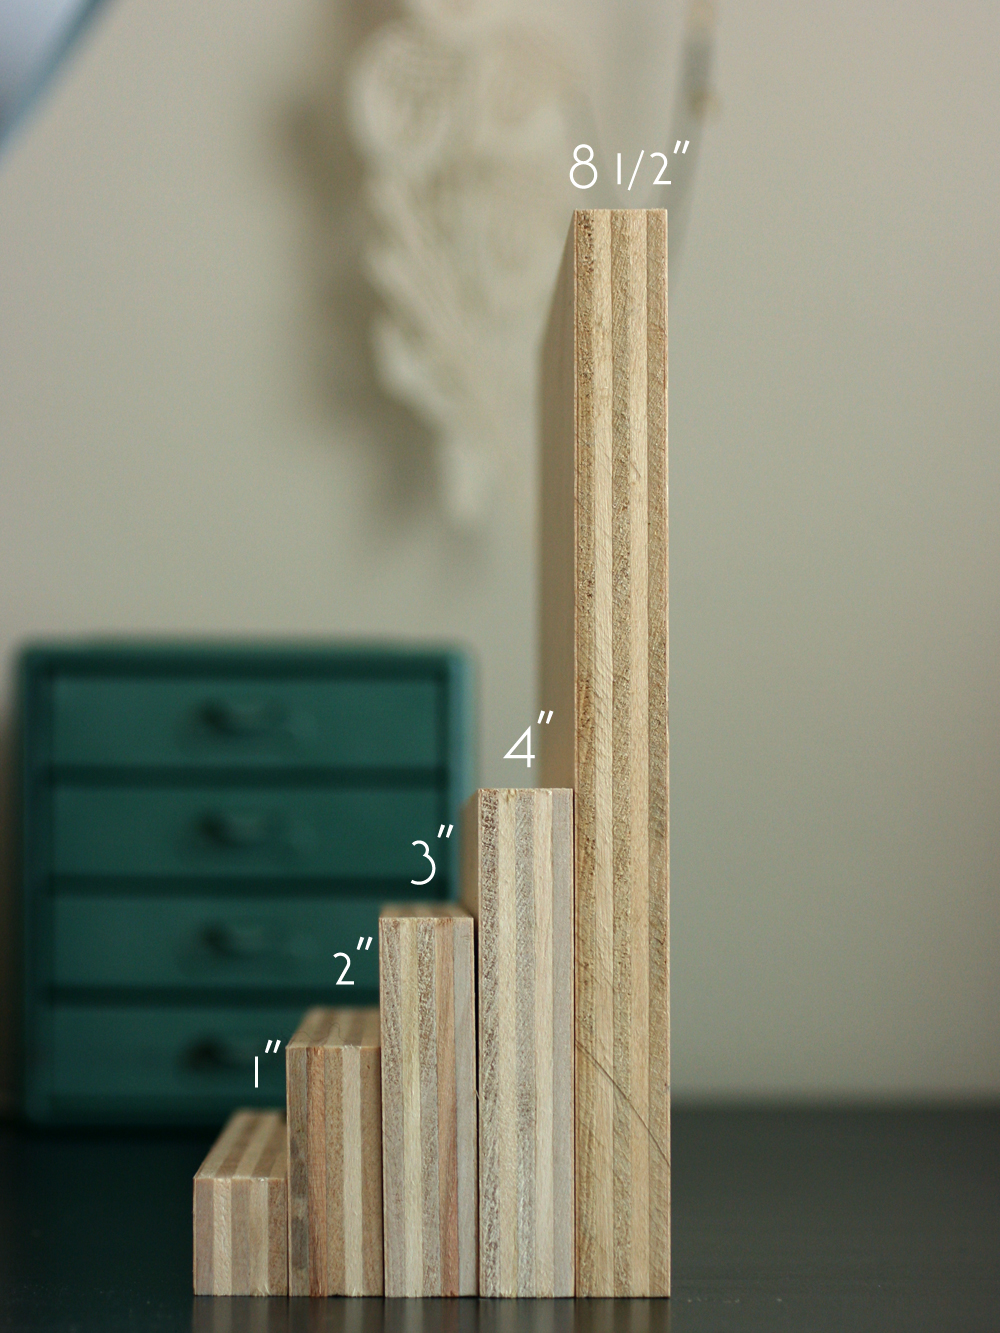 diy idea cute bookshelf (7)